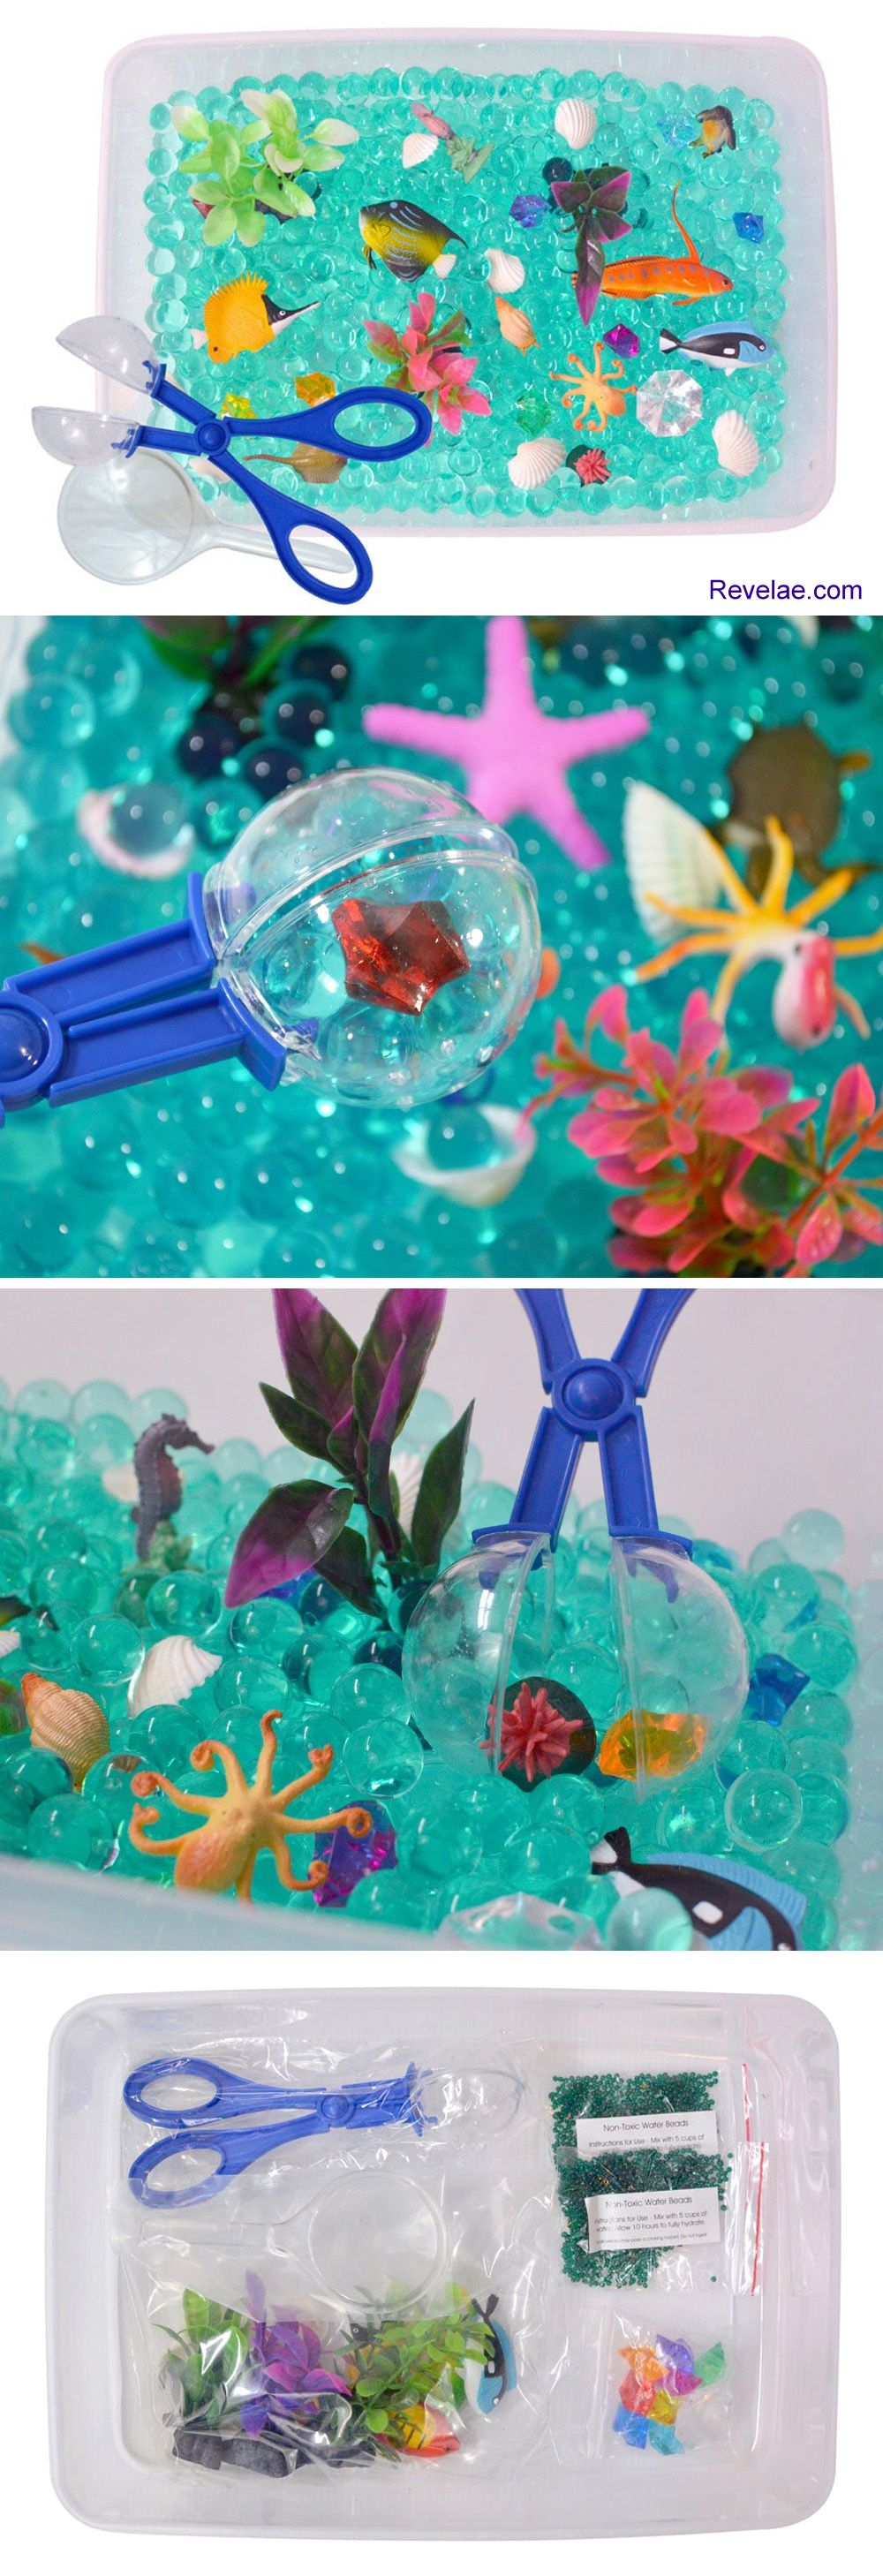 Discovery Box for Sensory Play Ocean Exploration